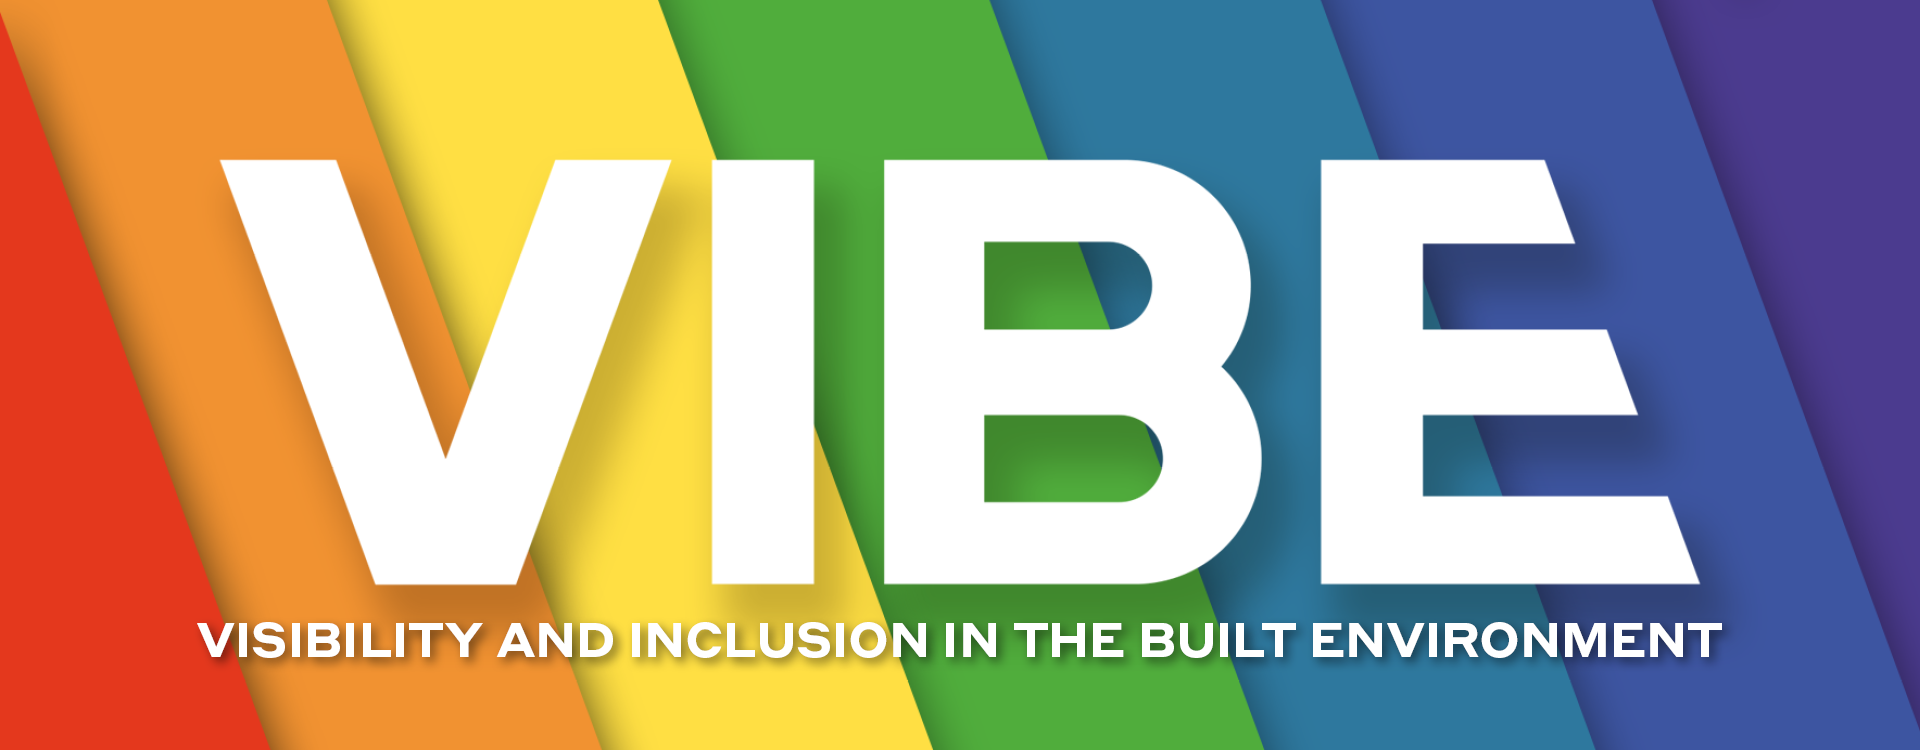 bnr-visibility-and-inclusion-in-the-built-environment